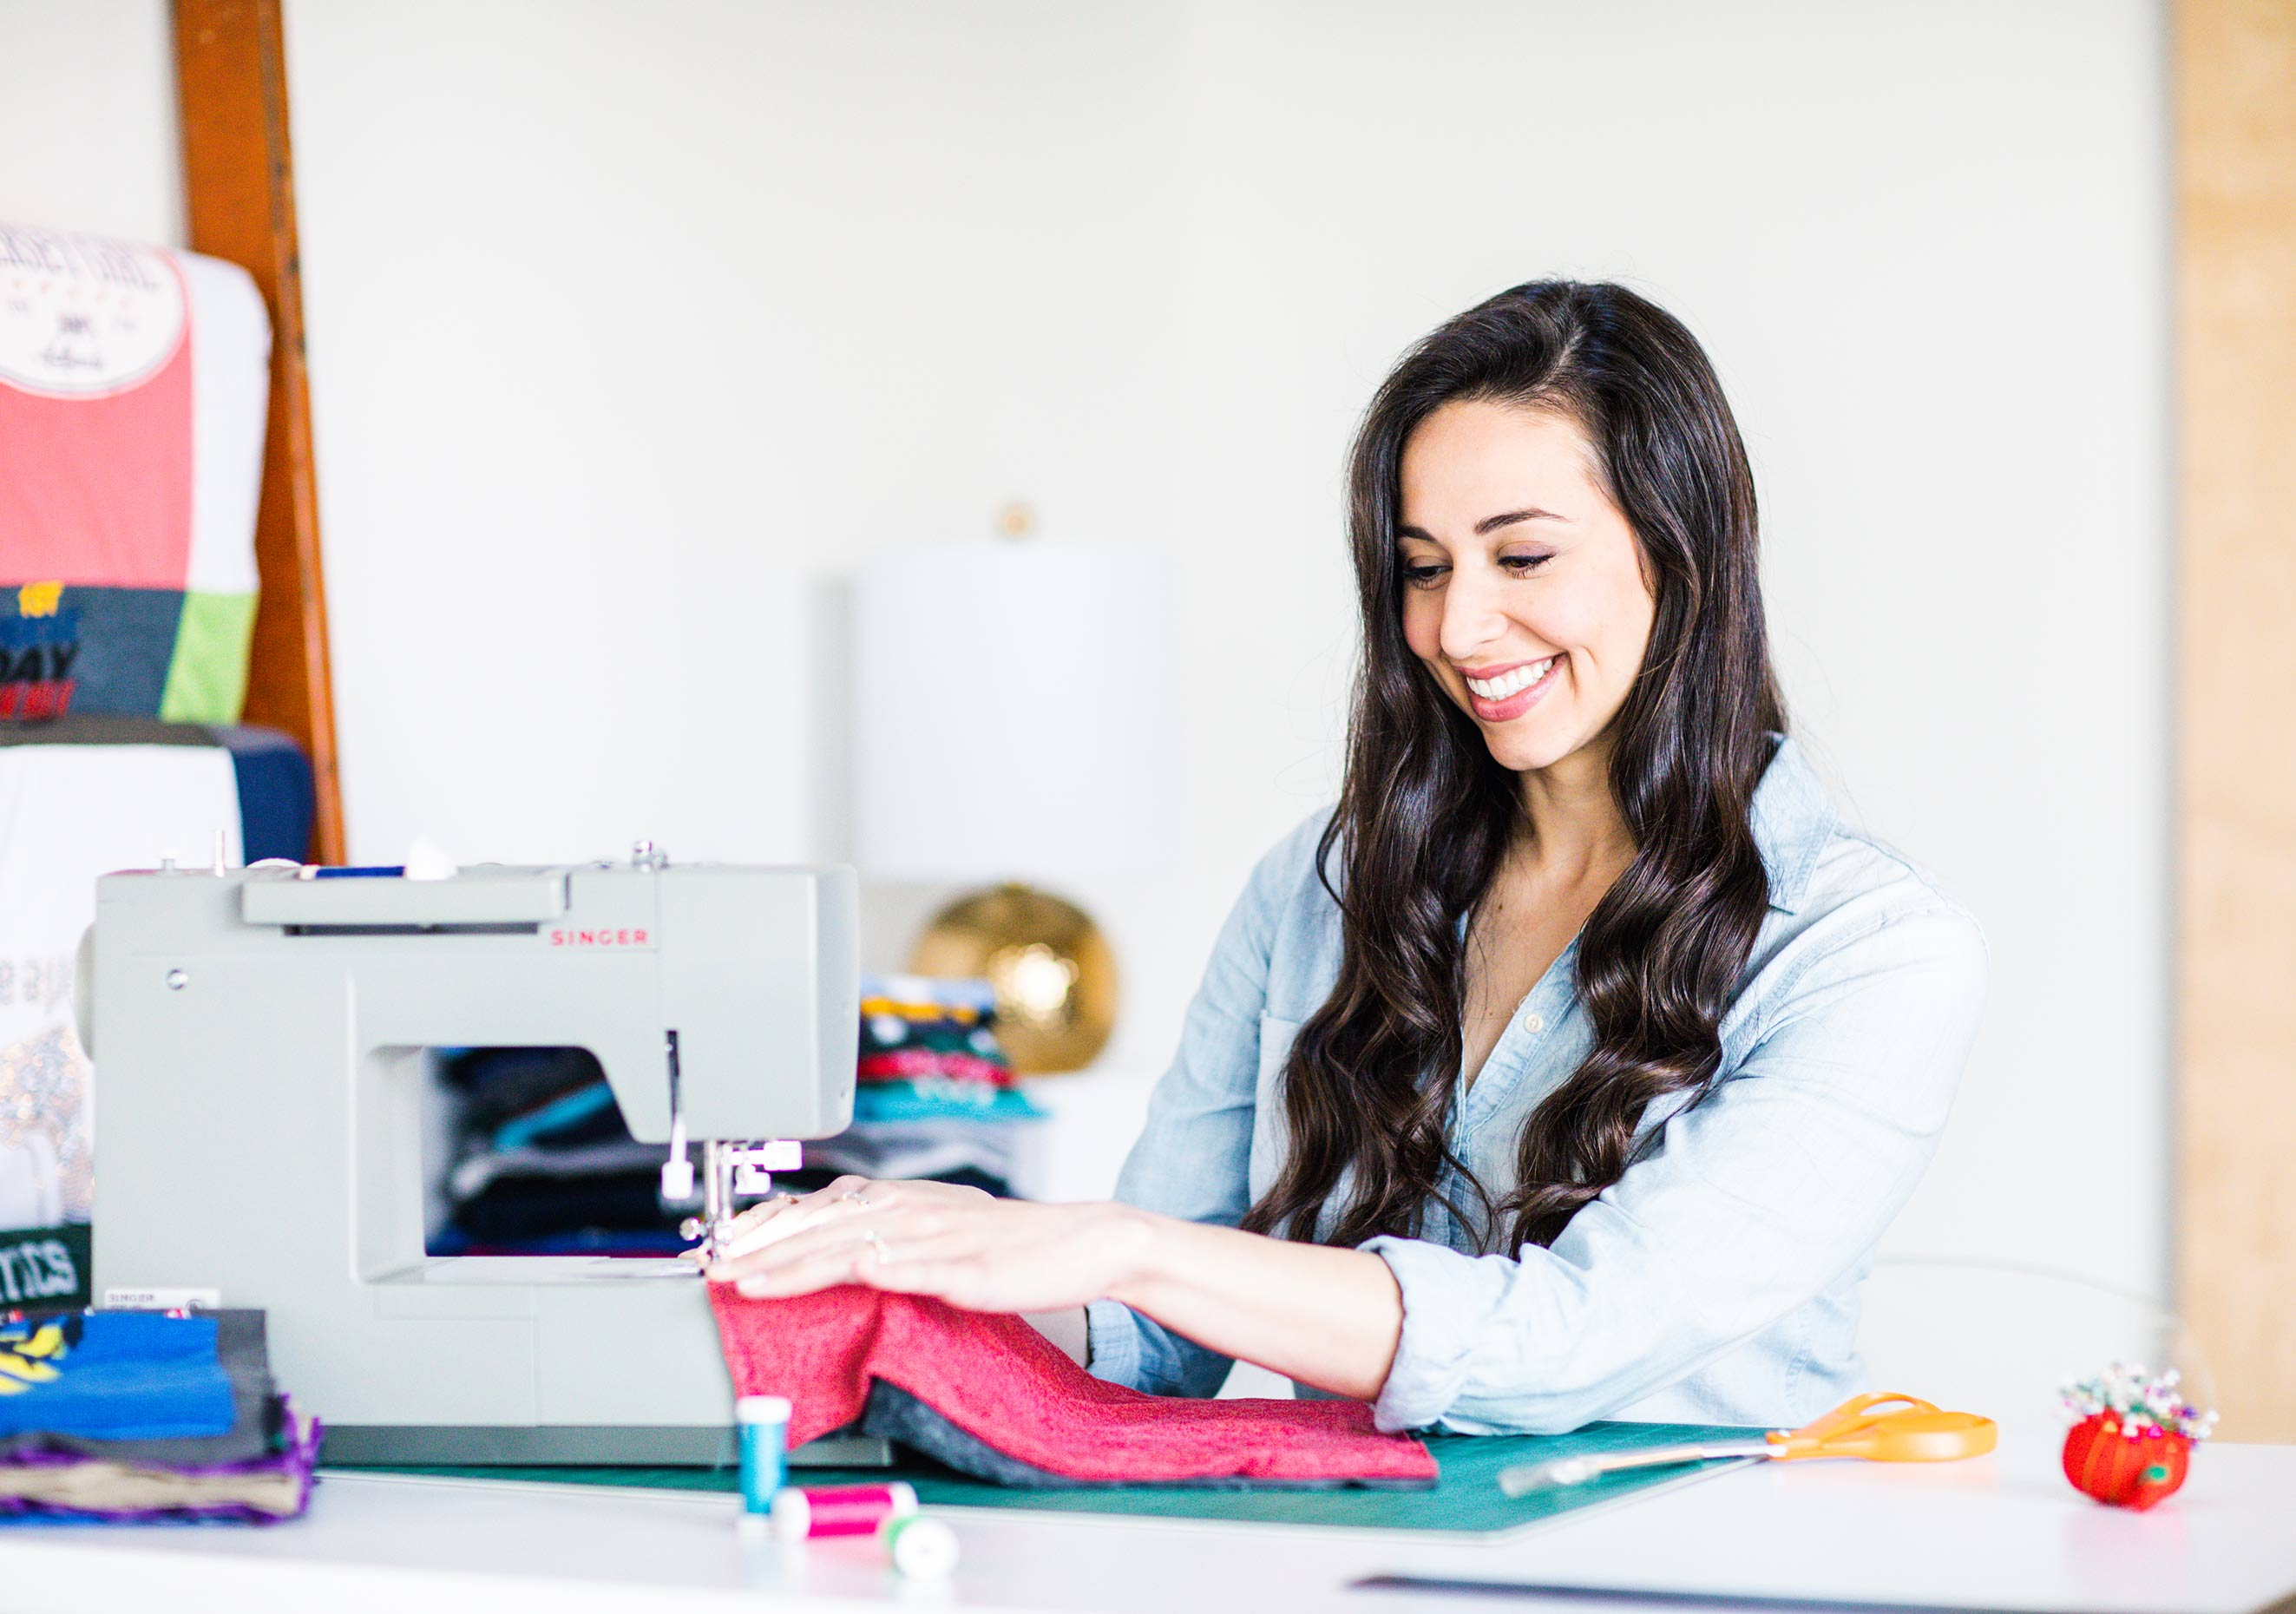 Memory Stitch sewing lifestyle product photography in Omaha, Nebraska by Dana Damewood Photography.